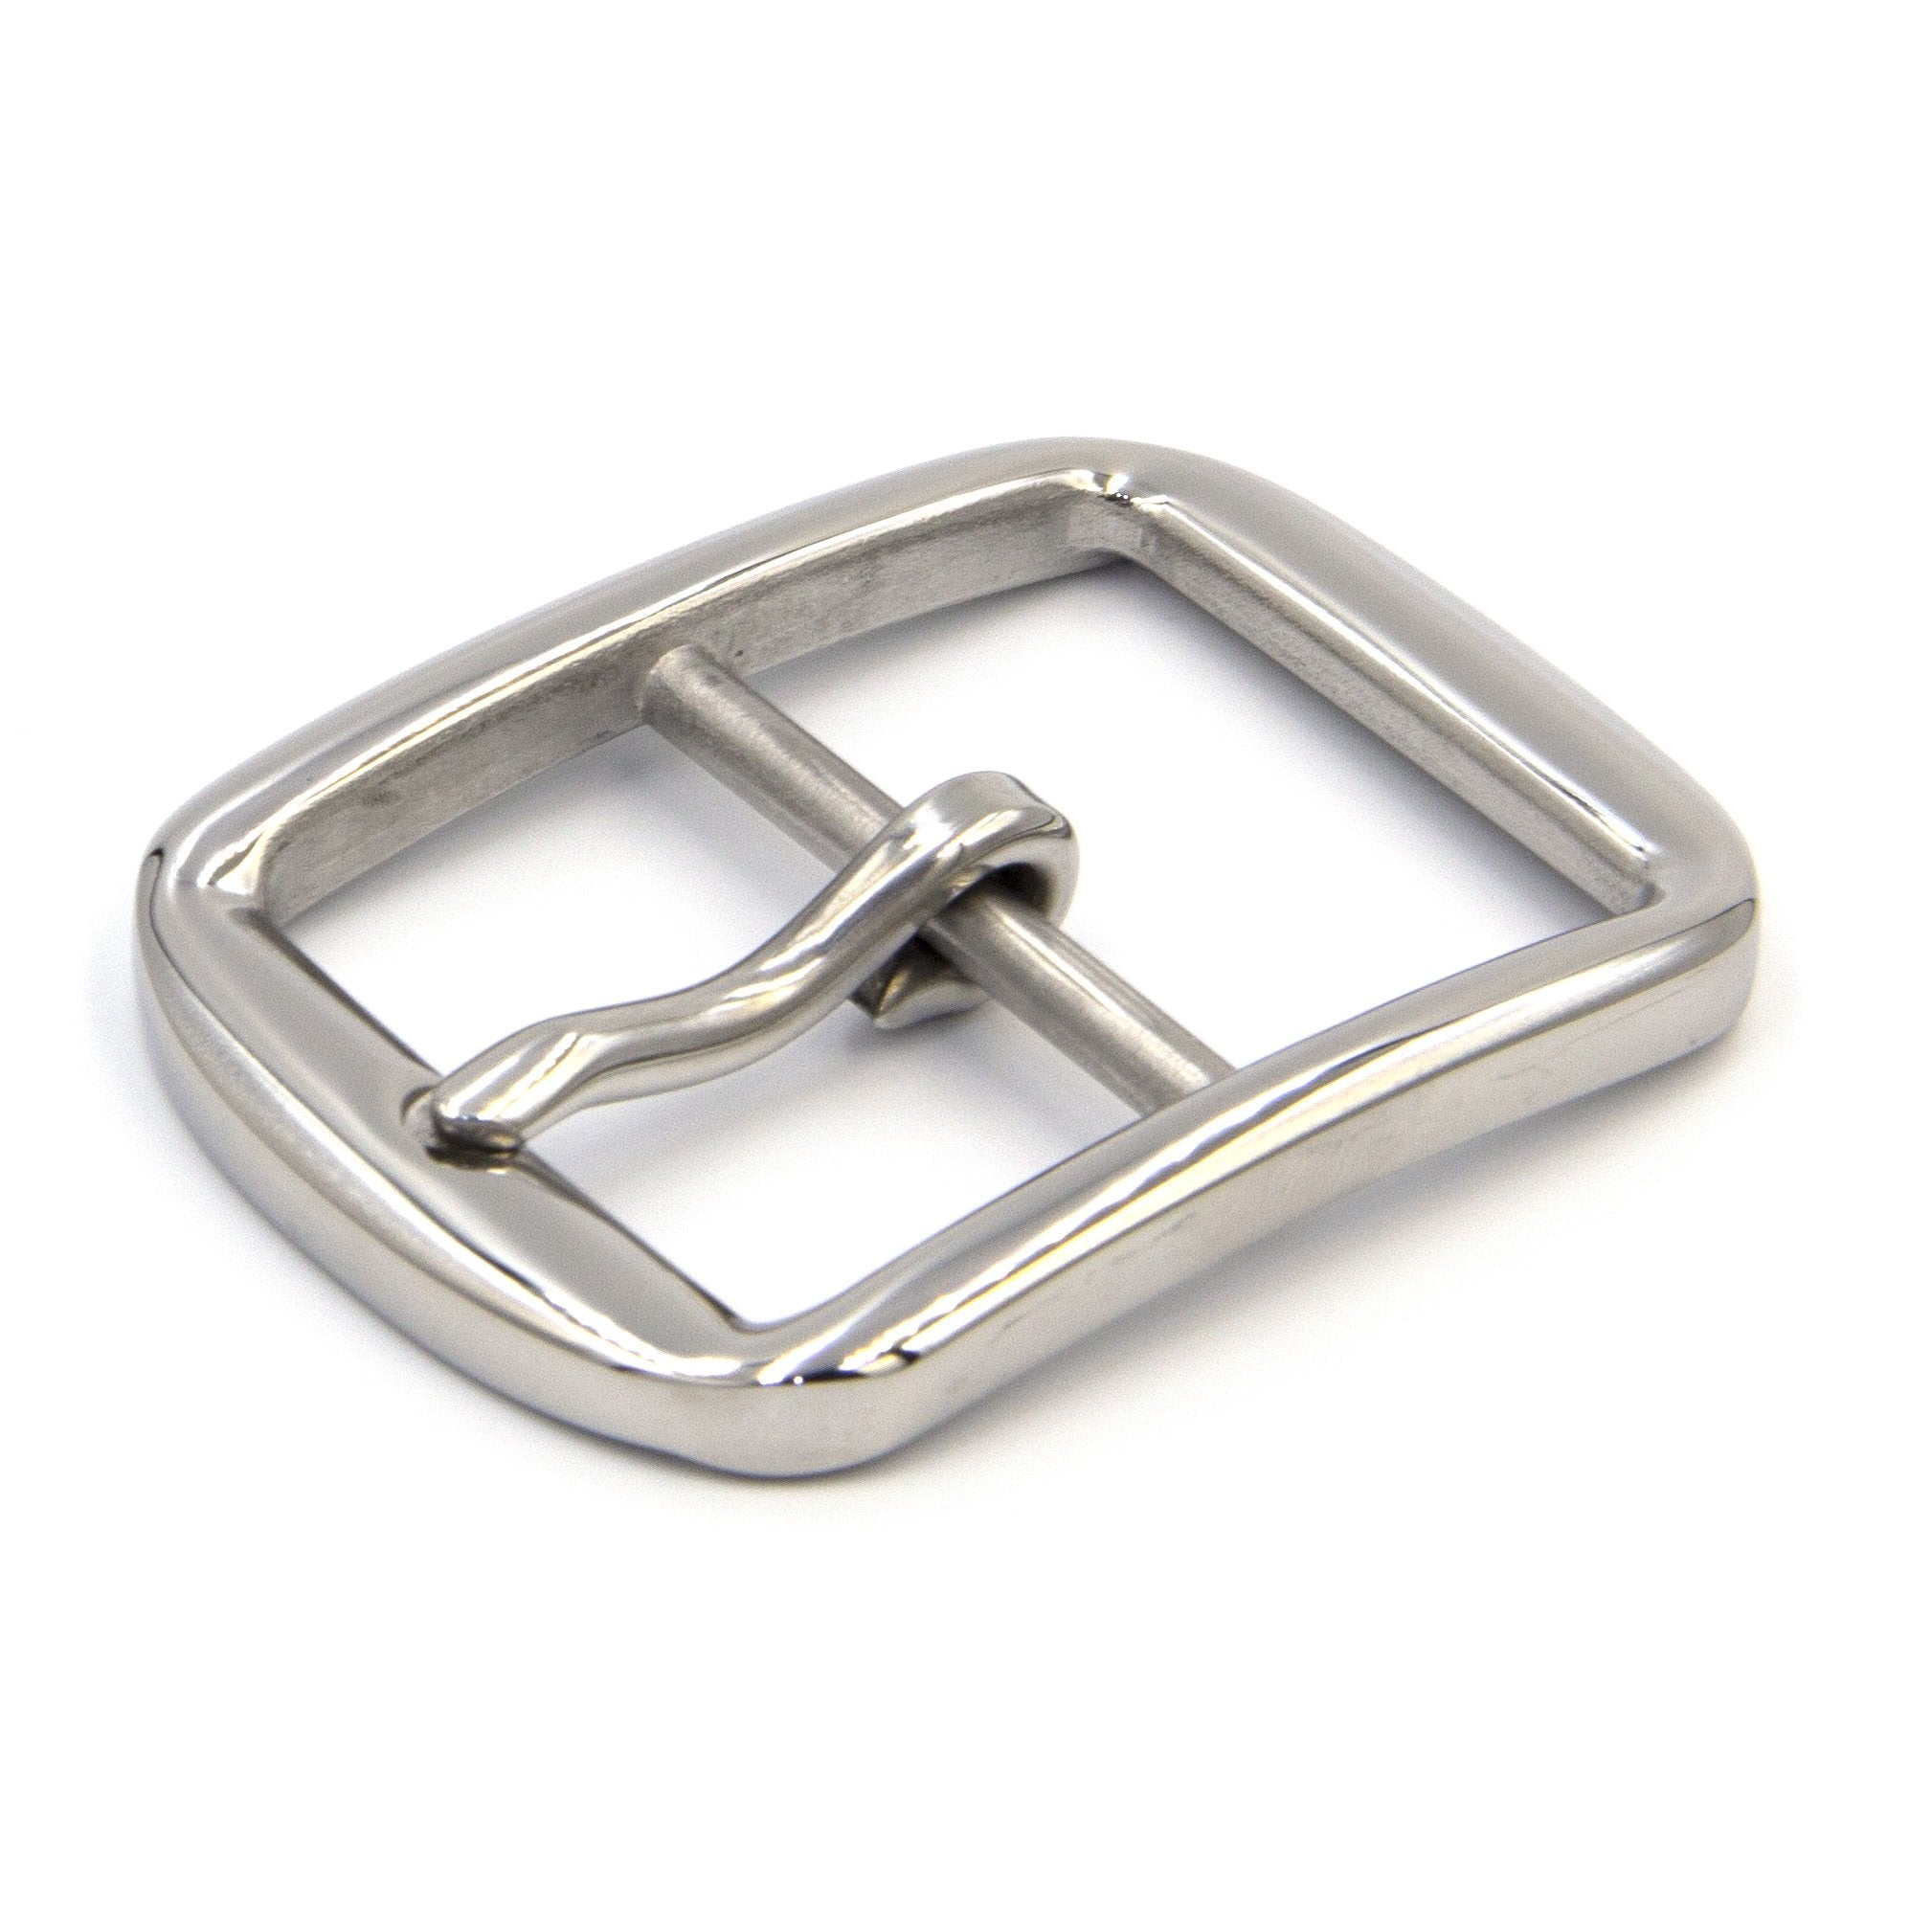 Stainless steel belt buckle new design for belt 38-40 mm - Metal Field